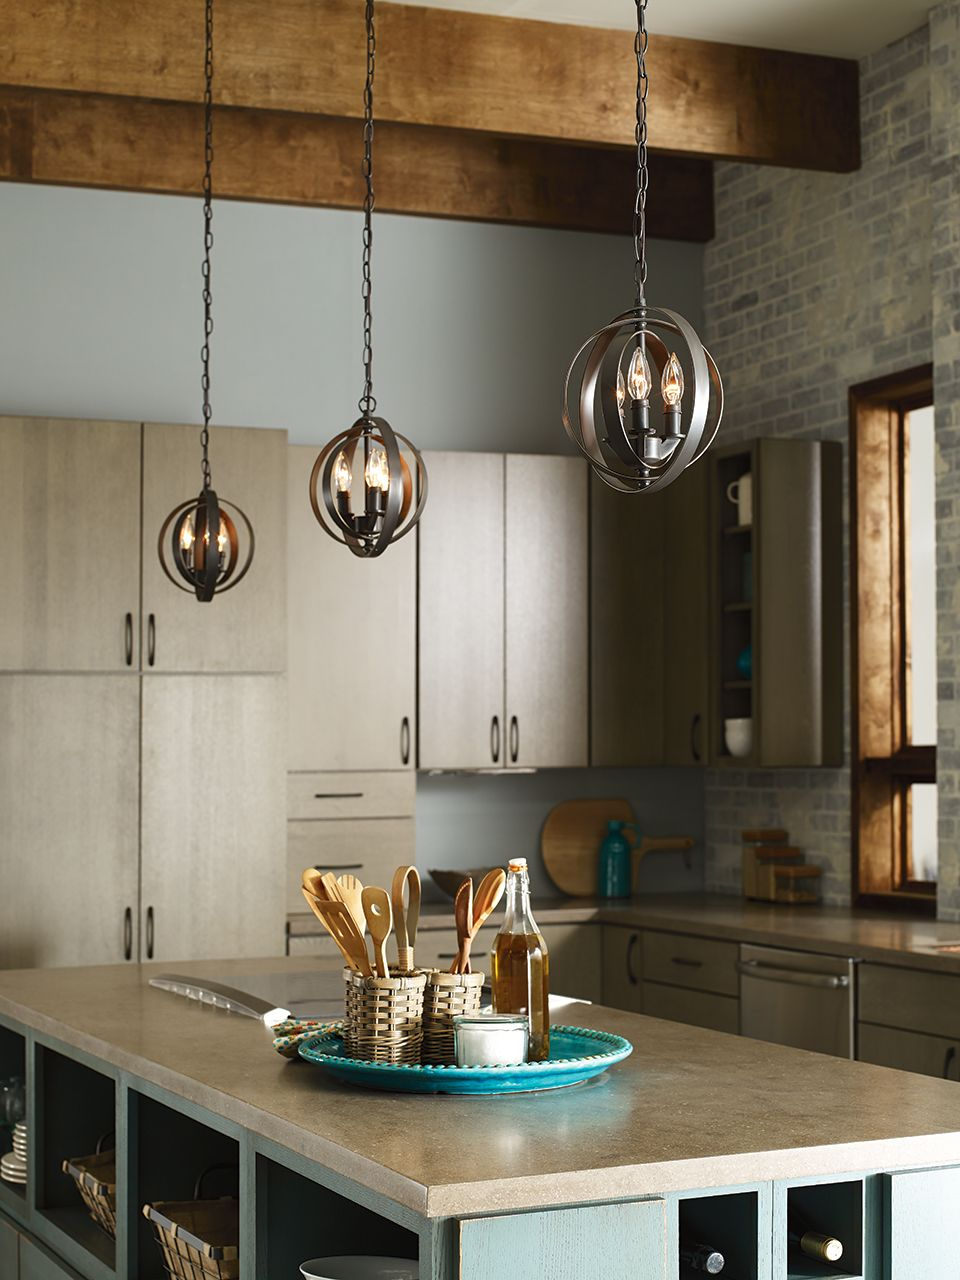 Orb Mini-pendants From Progress Lighting Add Personality